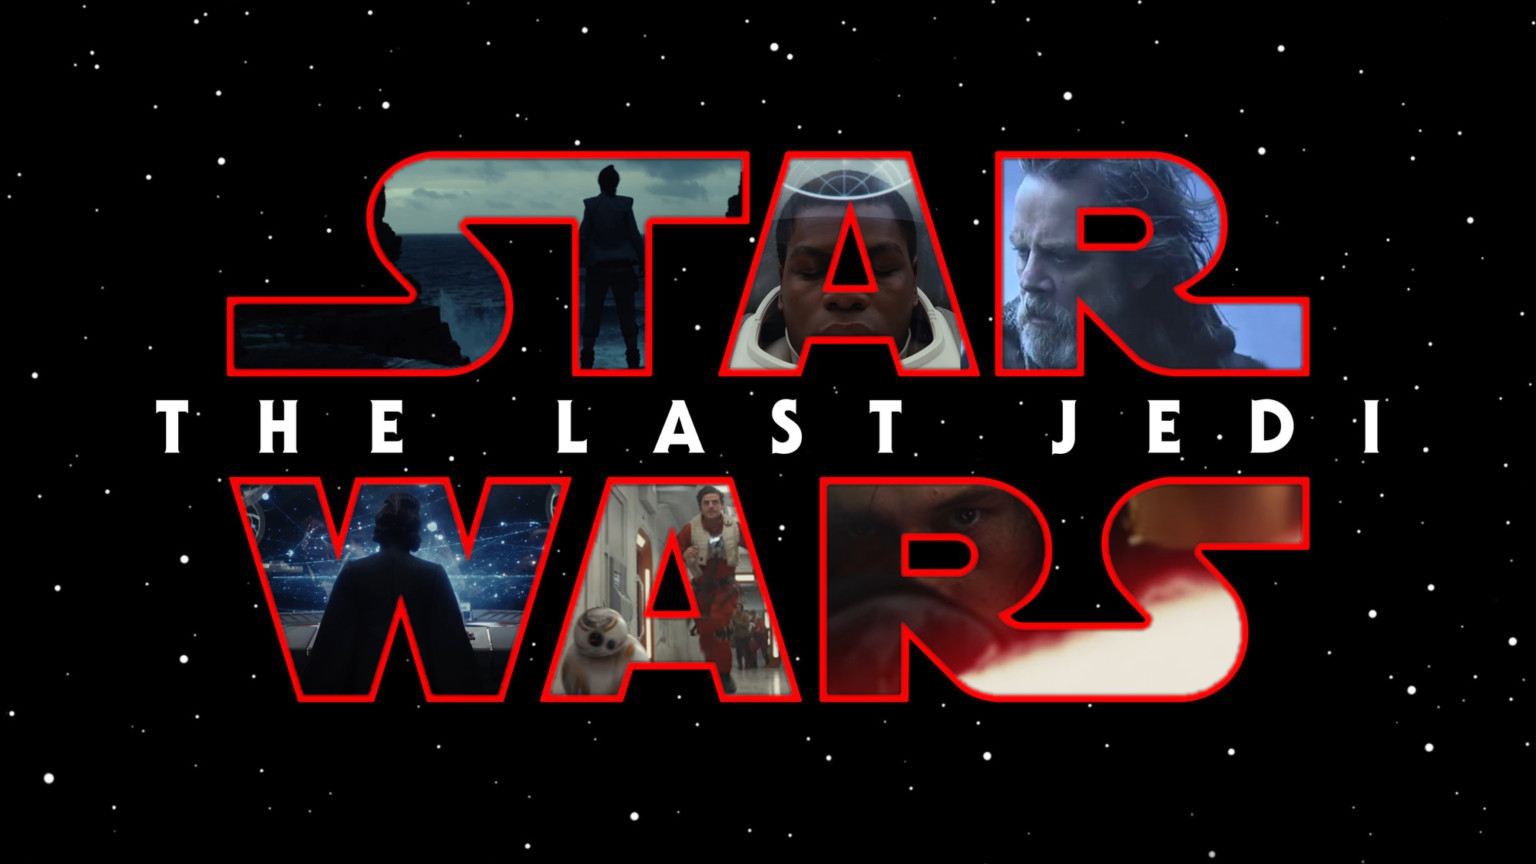 TV and Movie News Star Wars 8 Director Gives One Word Preview of